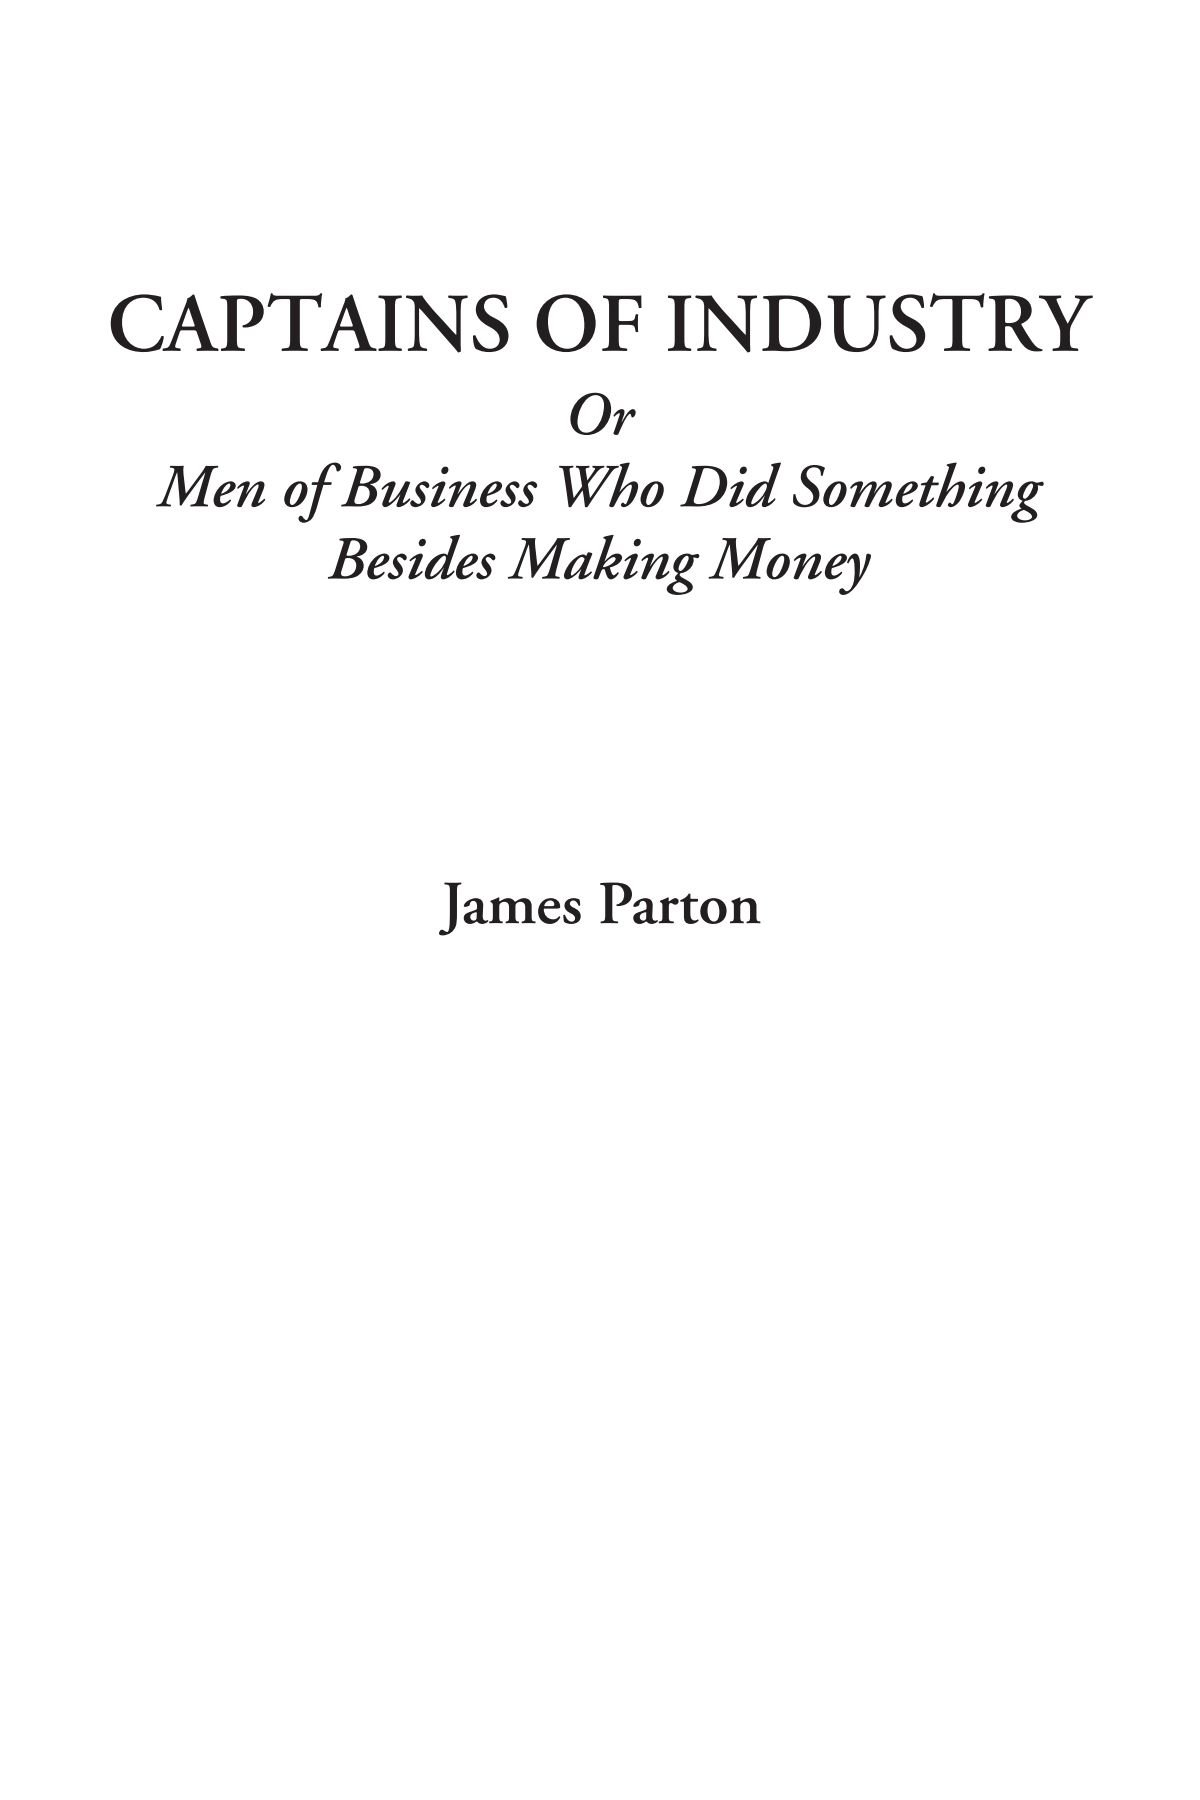 Download Captains of Industry Or Men of Business Who Did Something Besides Making Money PDF